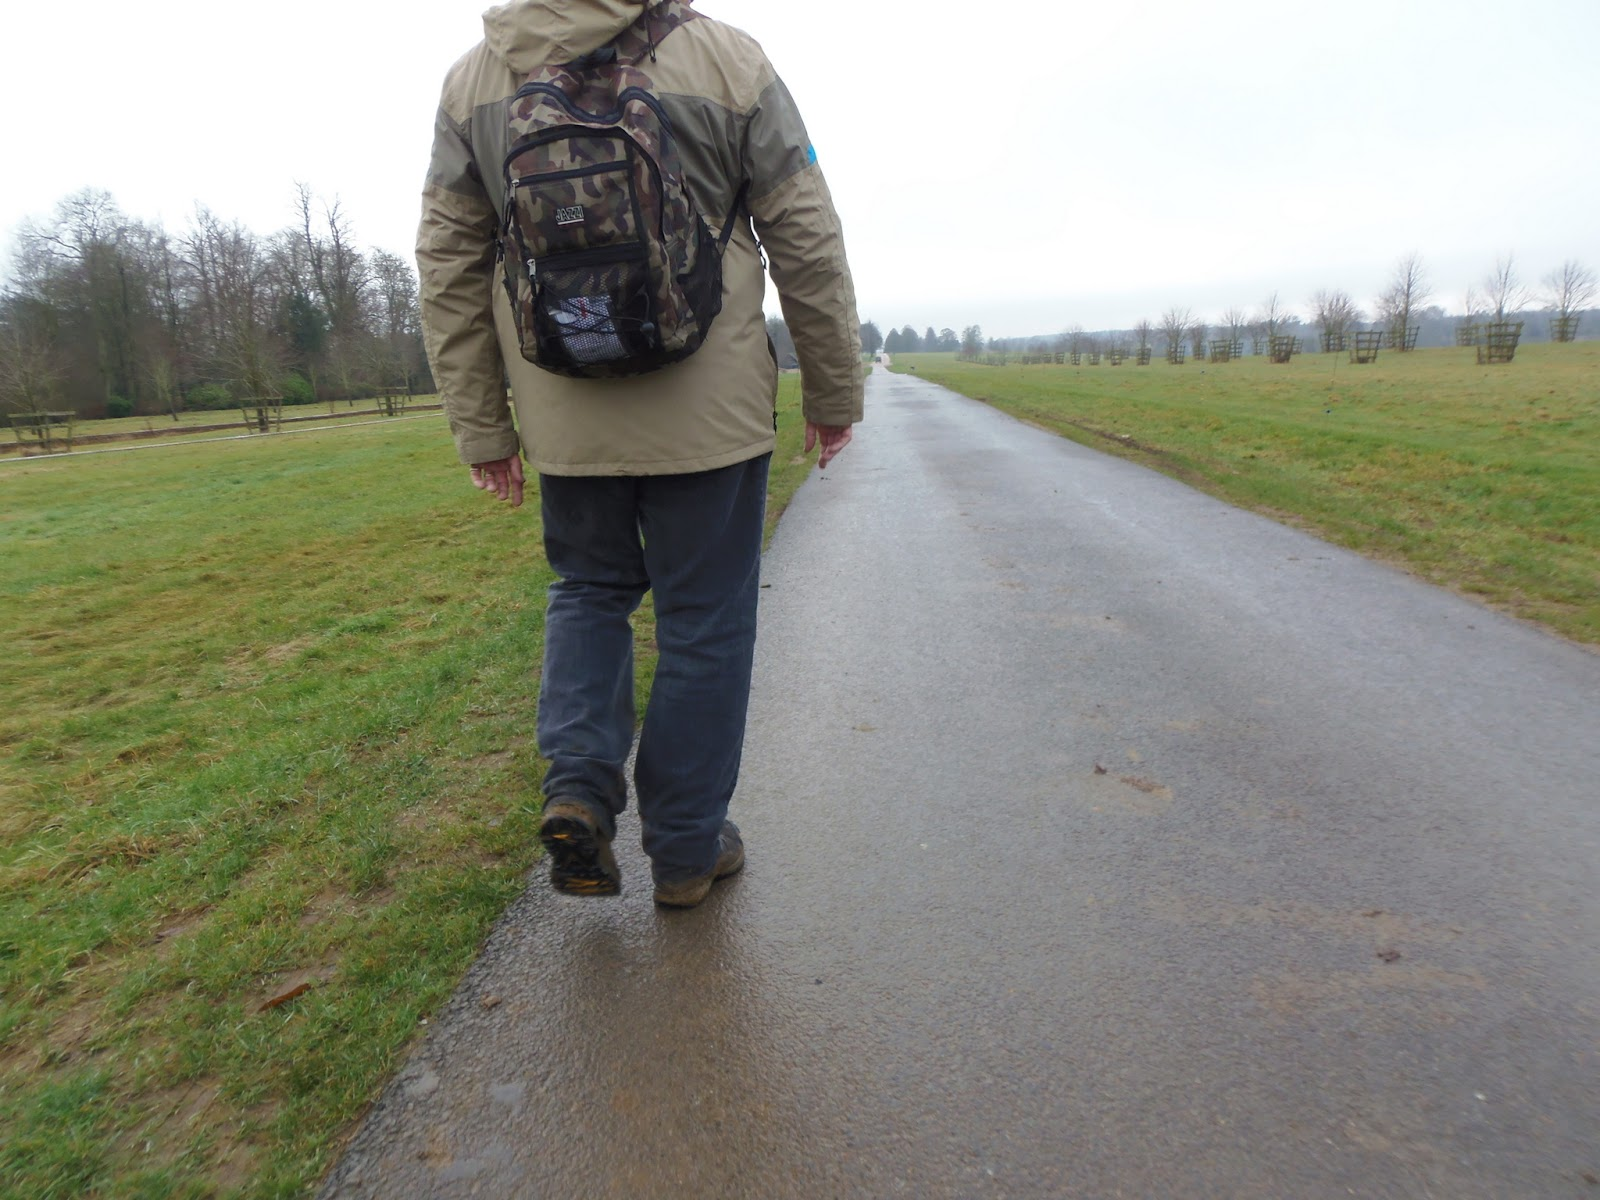 Walking Down the Road